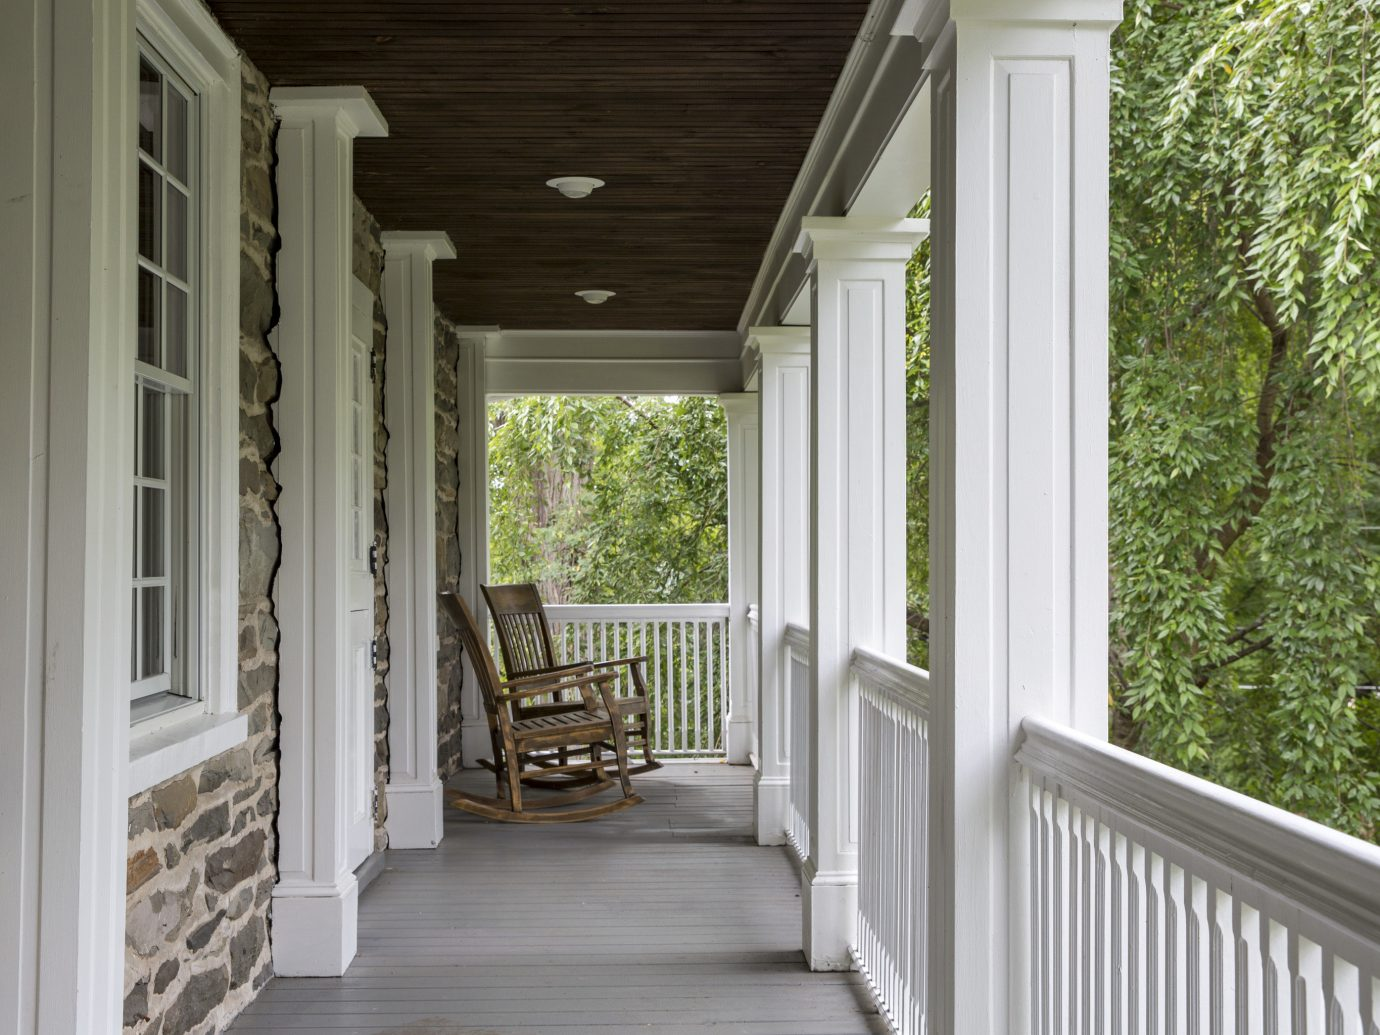 Food + Drink Romantic Getaways Weekend Getaways building porch property house home room estate siding cottage white interior design window wood outdoor structure farmhouse mansion real estate furniture